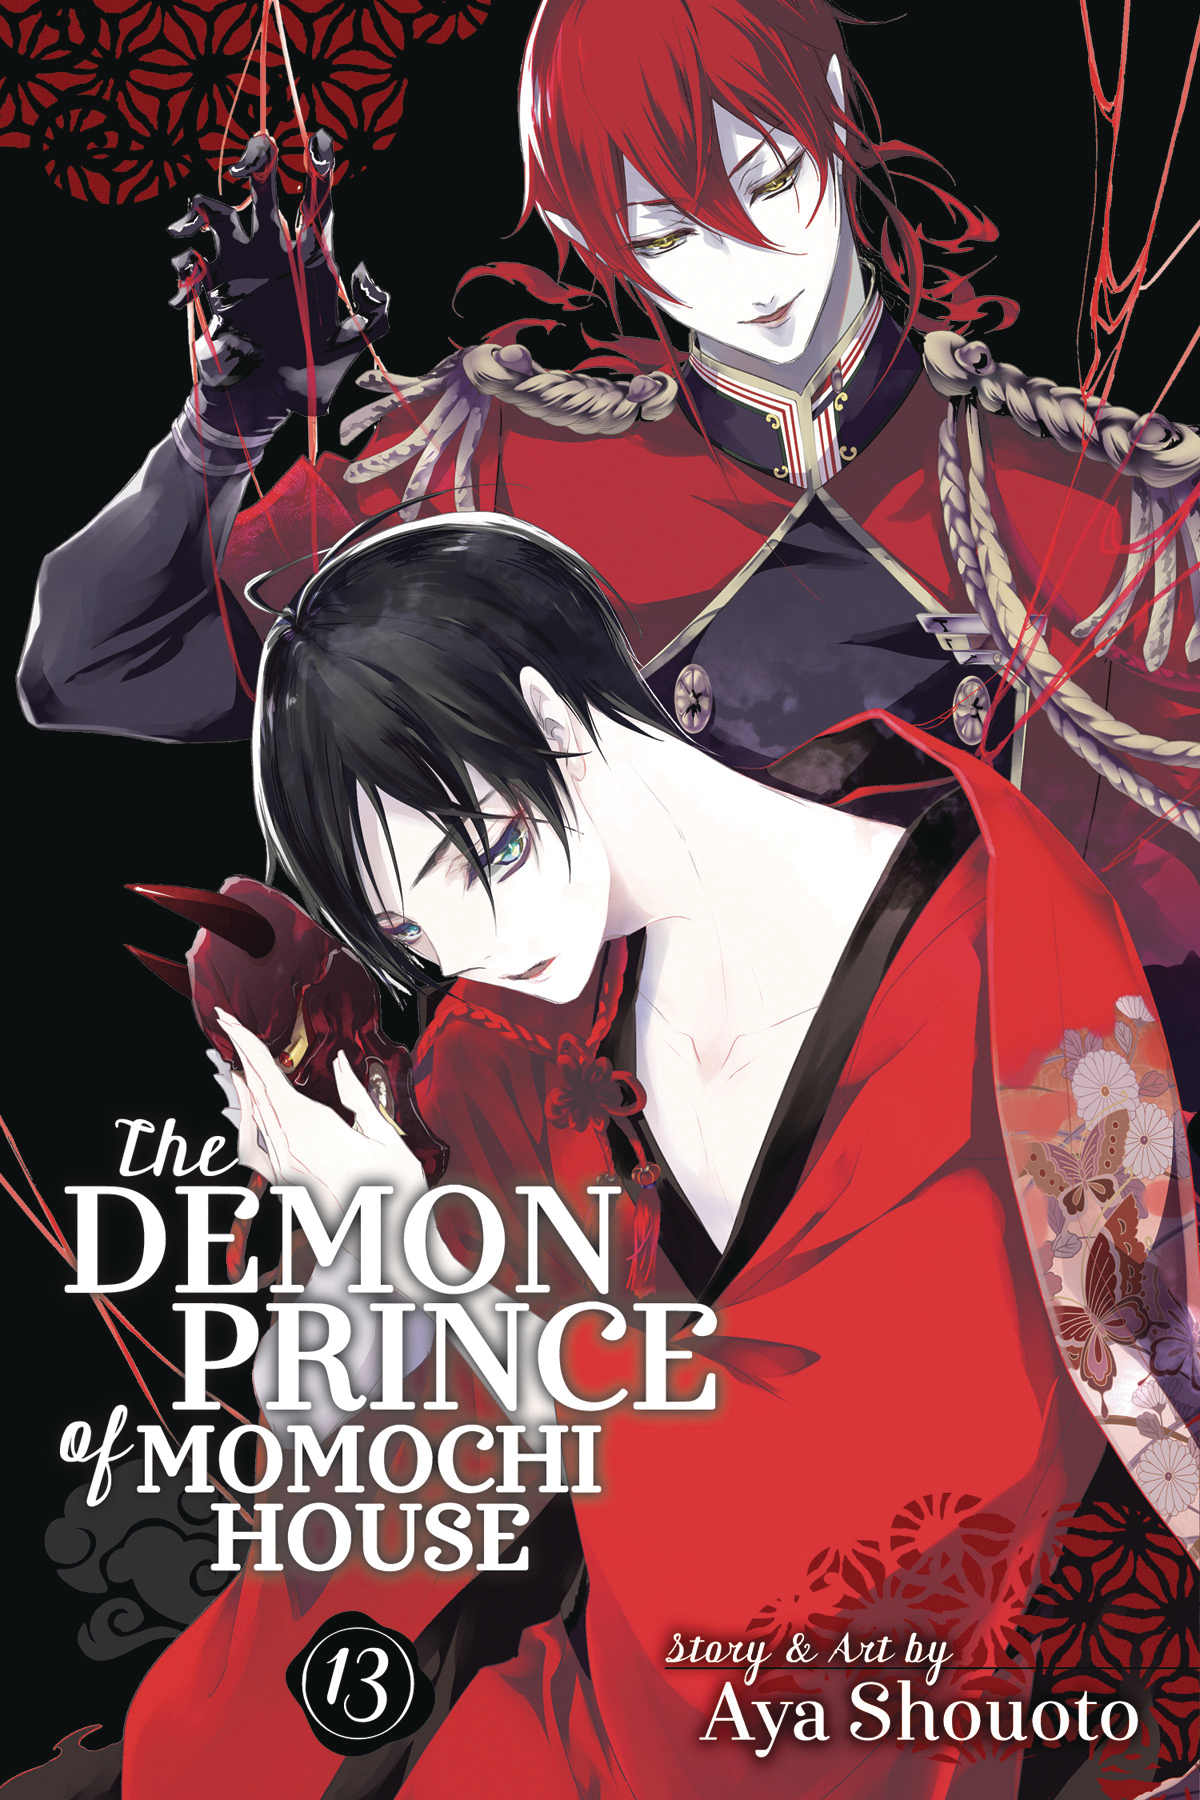 DEMON PRINCE OF MOMOCHI HOUSE GN VOL 13